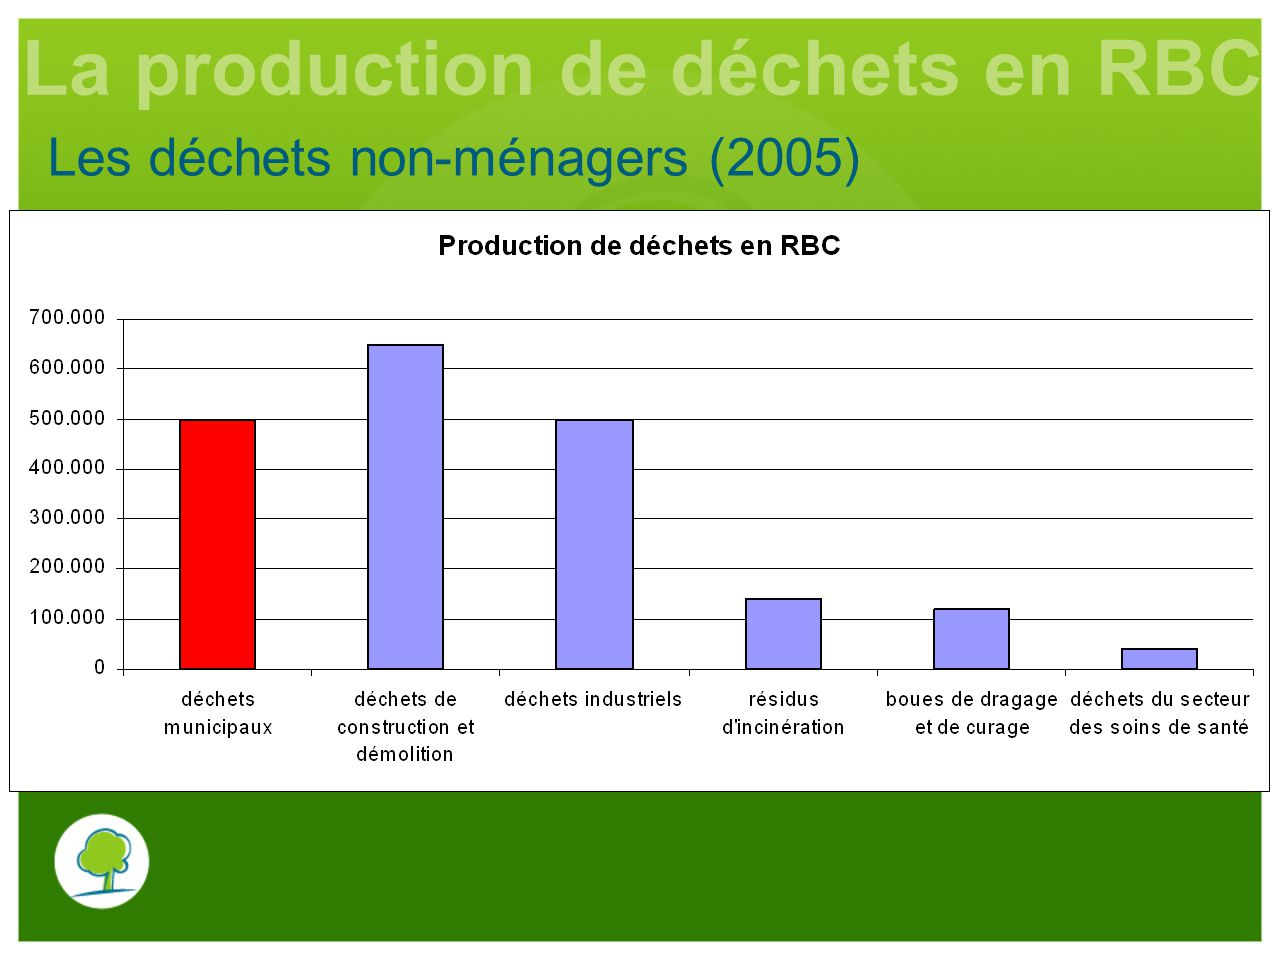 La production de déchets en RBC